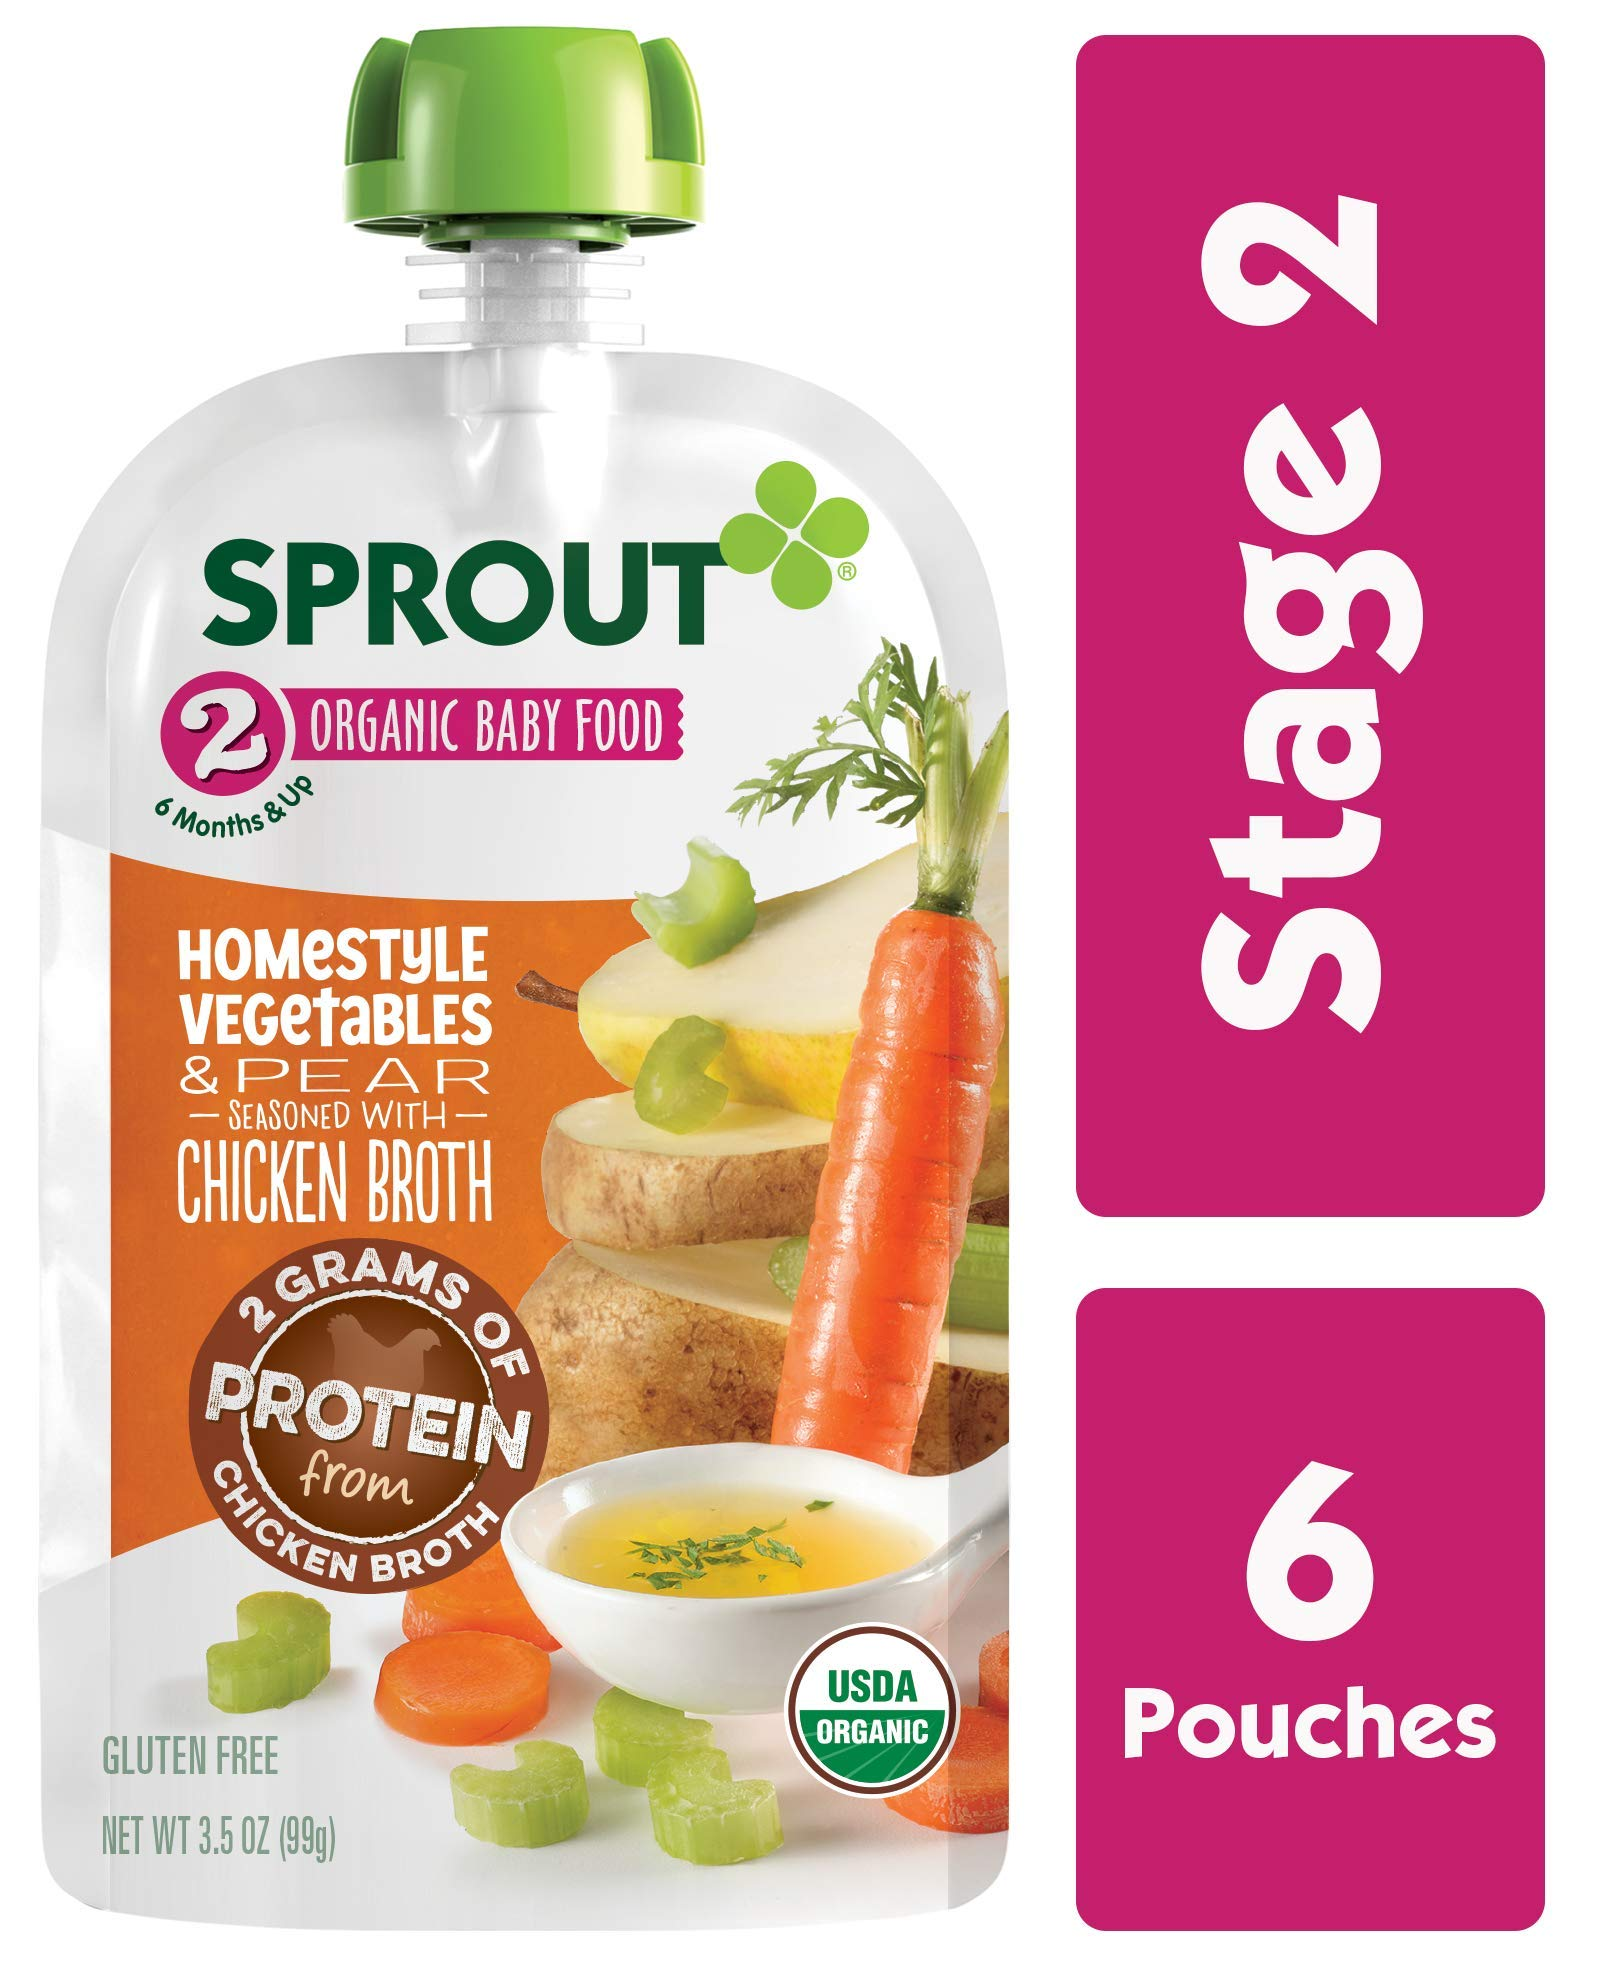 Sprout Organic Stage 2 Baby Food Homestyle Vegetables & Pear w/ Chicken Bone Broth, 3.5 Ounce (Pack of 6) by Sprout